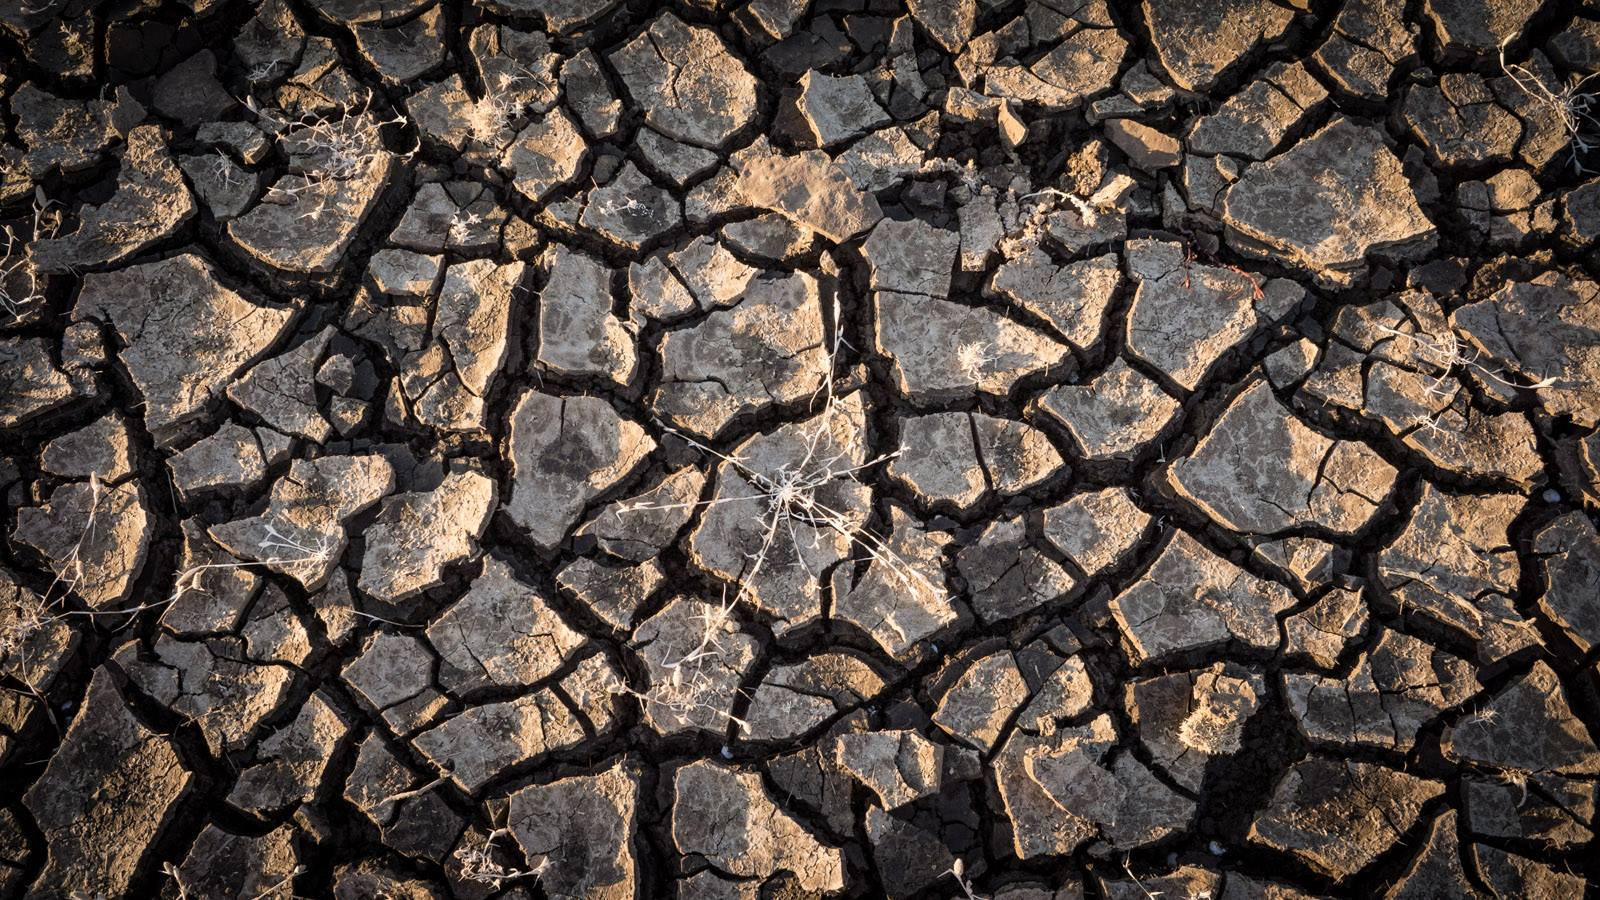 Cracked, dry soil in San Luis Reservoir, January 2014. Photo courtesy of Jason Liske.